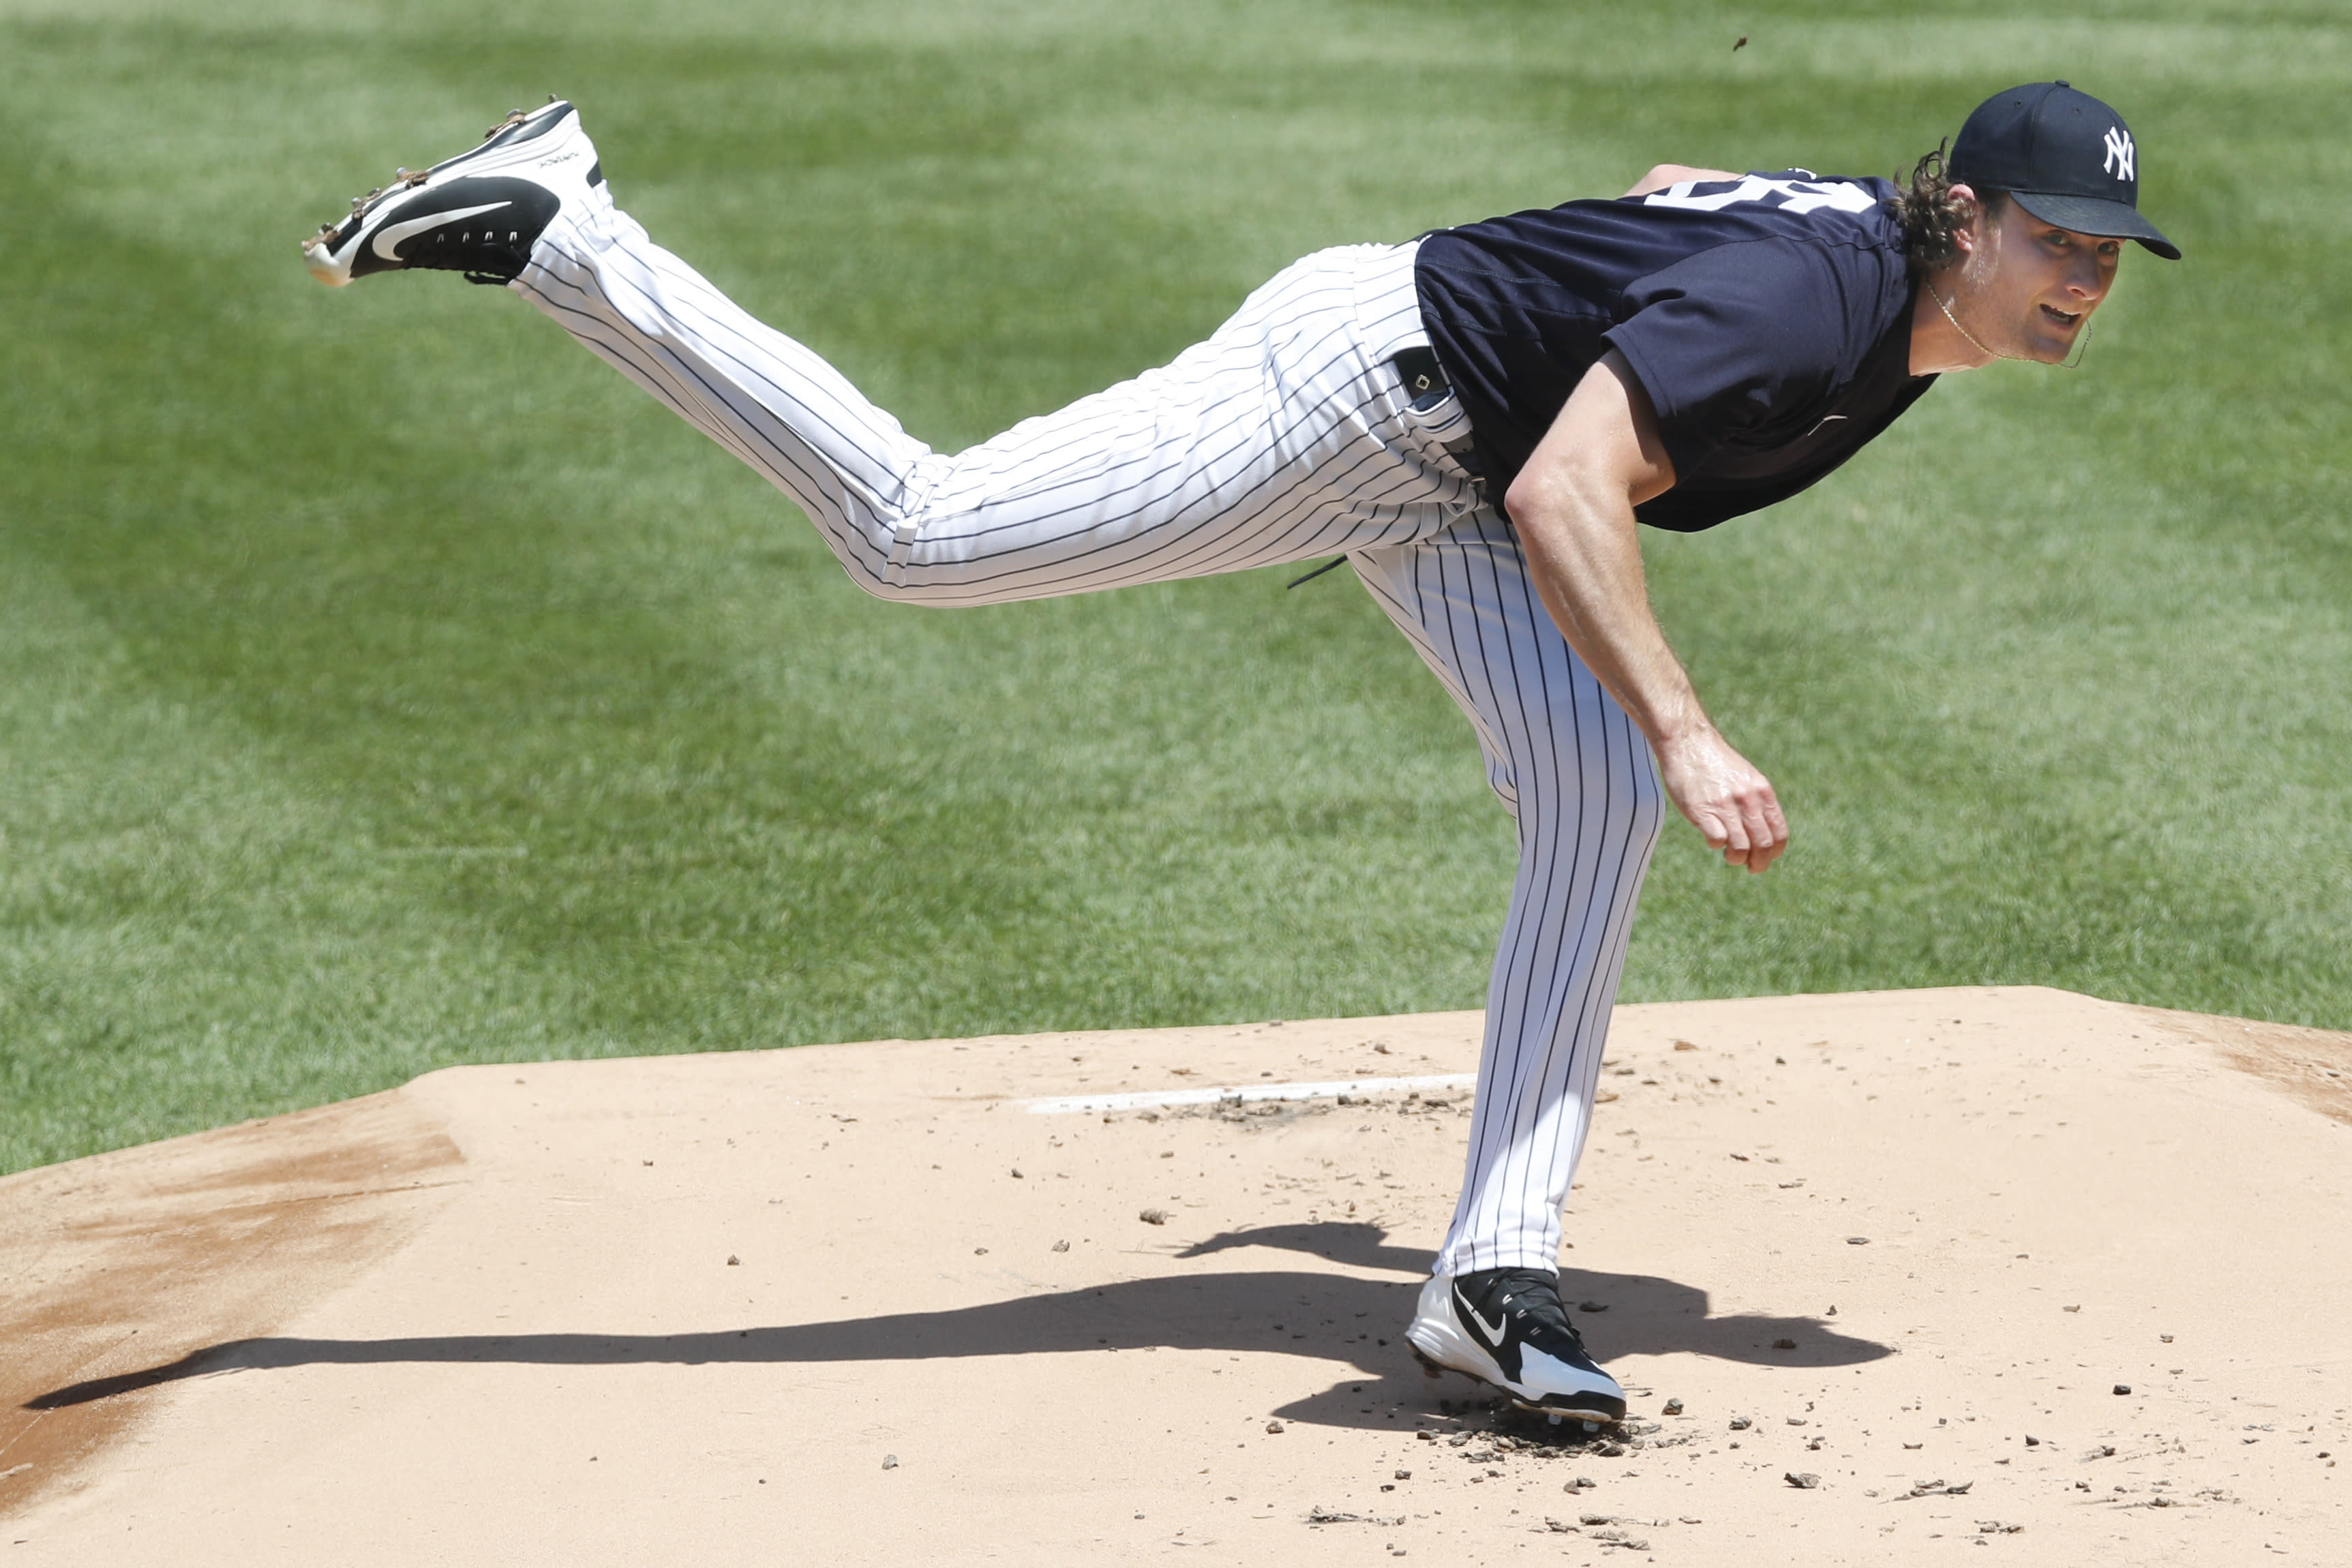 FILE - In this Sunday, July 12, 2020, file photo, New York Yankees starting pitcher Gerrit Cole follows through on a pitch during an intrasquad baseball game at Yankee Stadium in New York. On Thursday, July 23, the Yankees play at the Washongton Nationals. Juan Soto and Washington open their title defense after winning the World Series for the first time in franchise history. Gerrit Cole is hoping to lead New York to its 28th championship after the ace right-hander signed a blockbuster deal with the Yankees in free agency.(AP Photo/Kathy Willens, File)